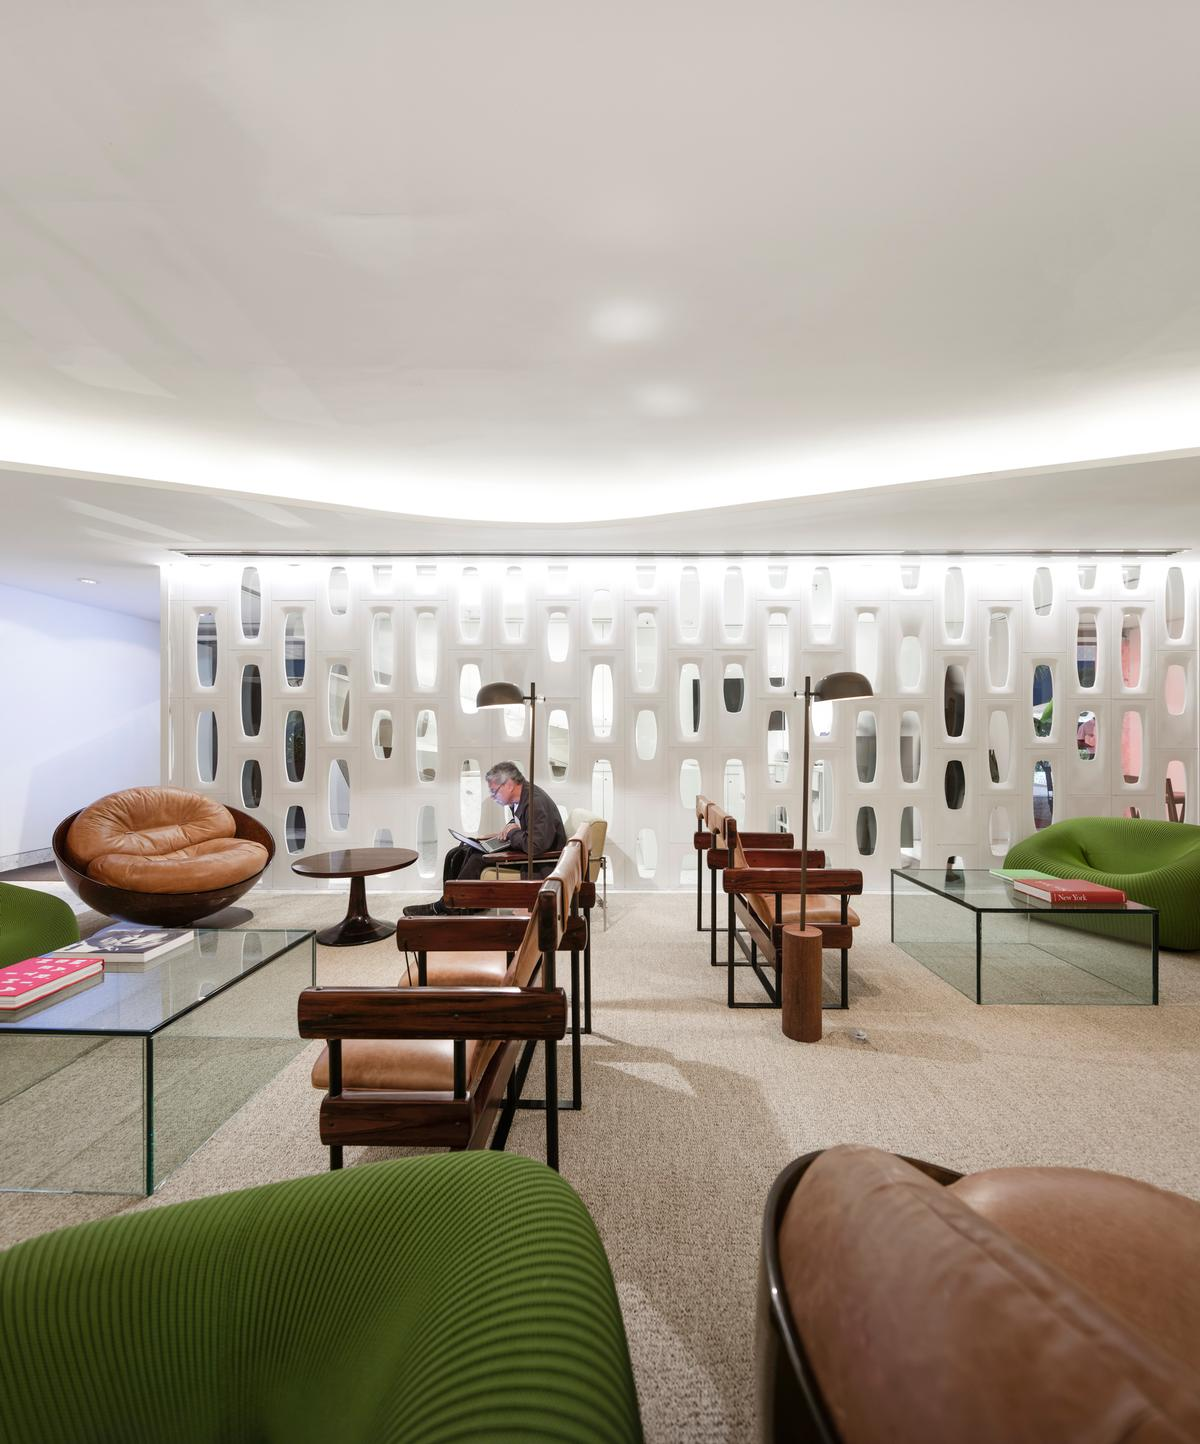 Furniture from the late Sergio Rodrigues is integrated into the hotel, along with the work of contemporary designers such as Paola Lenti / Fernando Guerra